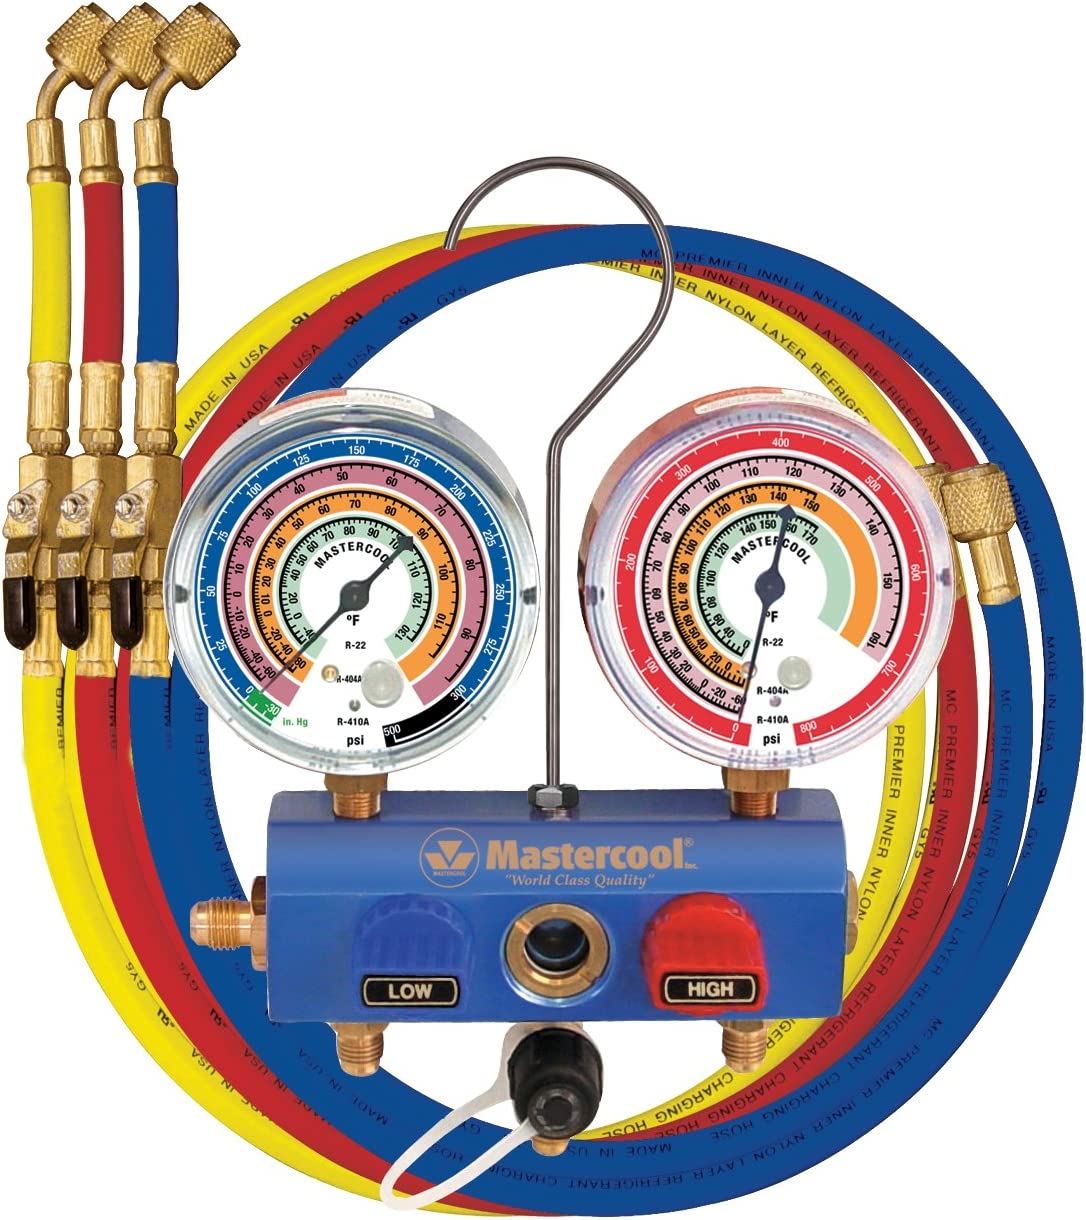 "Mastercool (59661) Blue R410A, R22, R404A 2-Way Manifold Set with 3-1/8"" Gauges and 60"" Hoses"